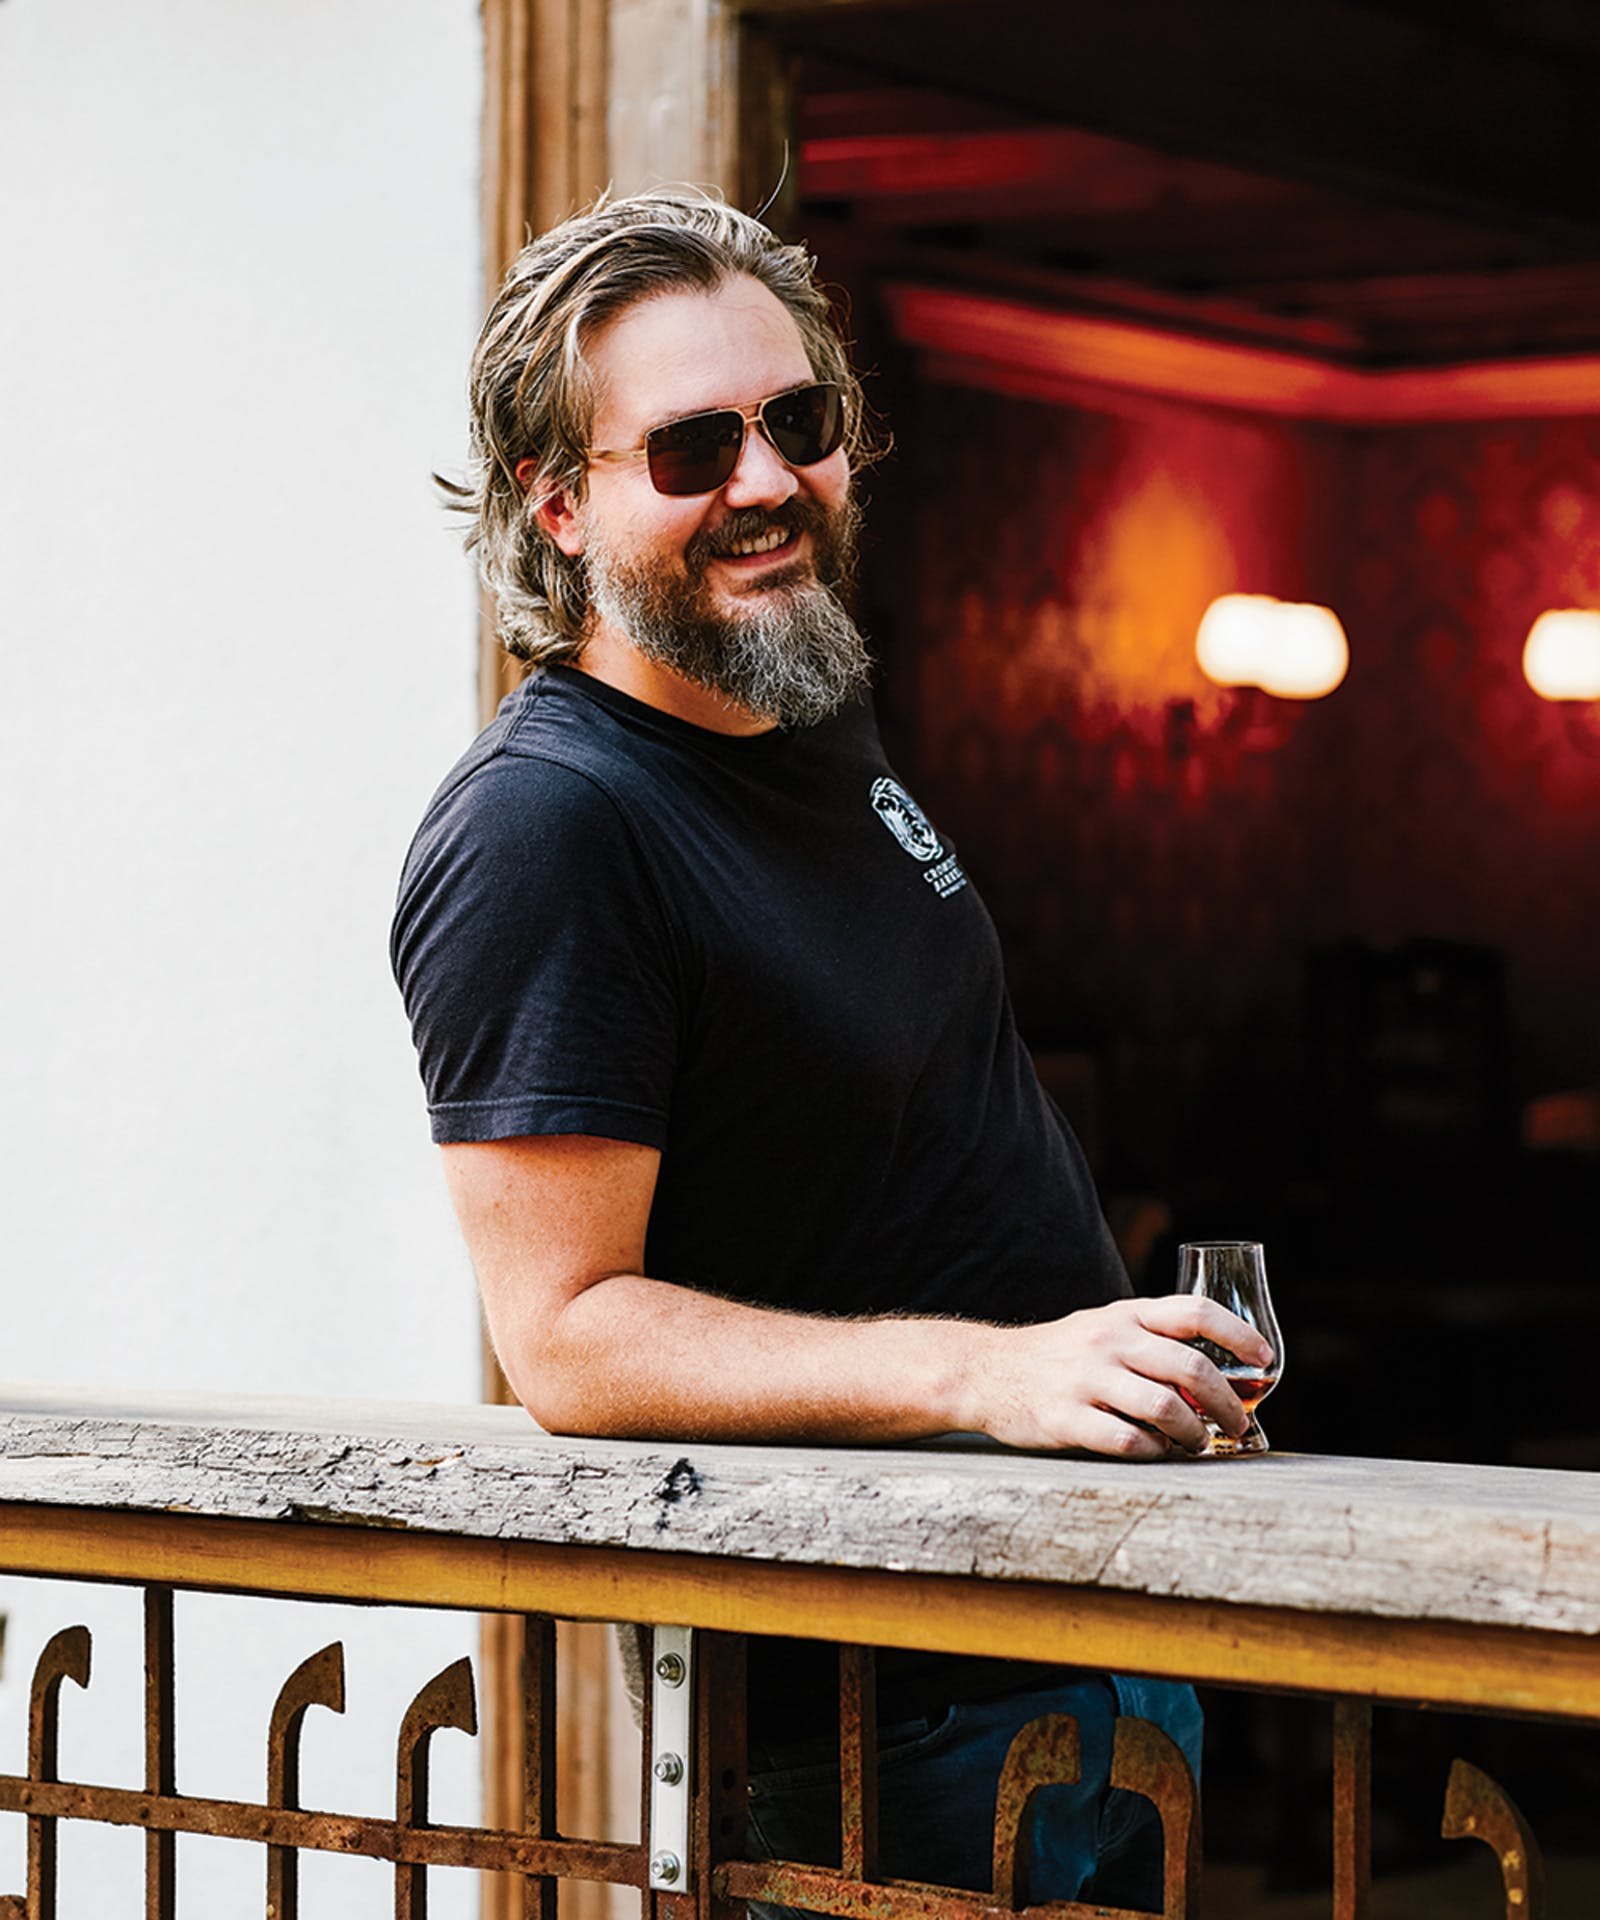 texas whiskey Cofounder Rex Williams at Crowded Barrel